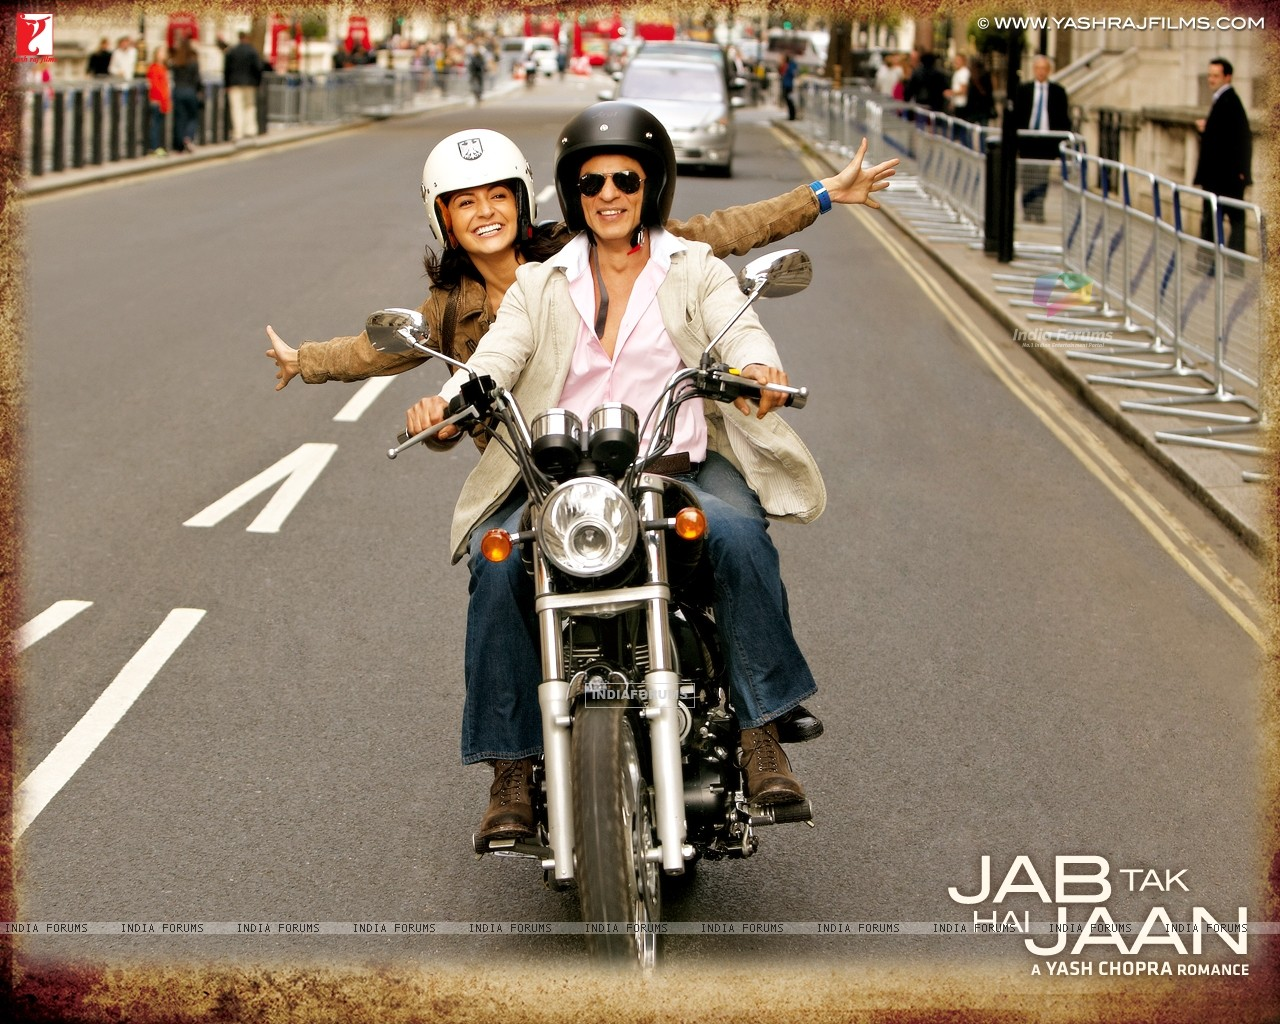 Shah Rukh Khan and Anushka Sharma in Jab Tak Hai Jaan (232797) size:1280x1024